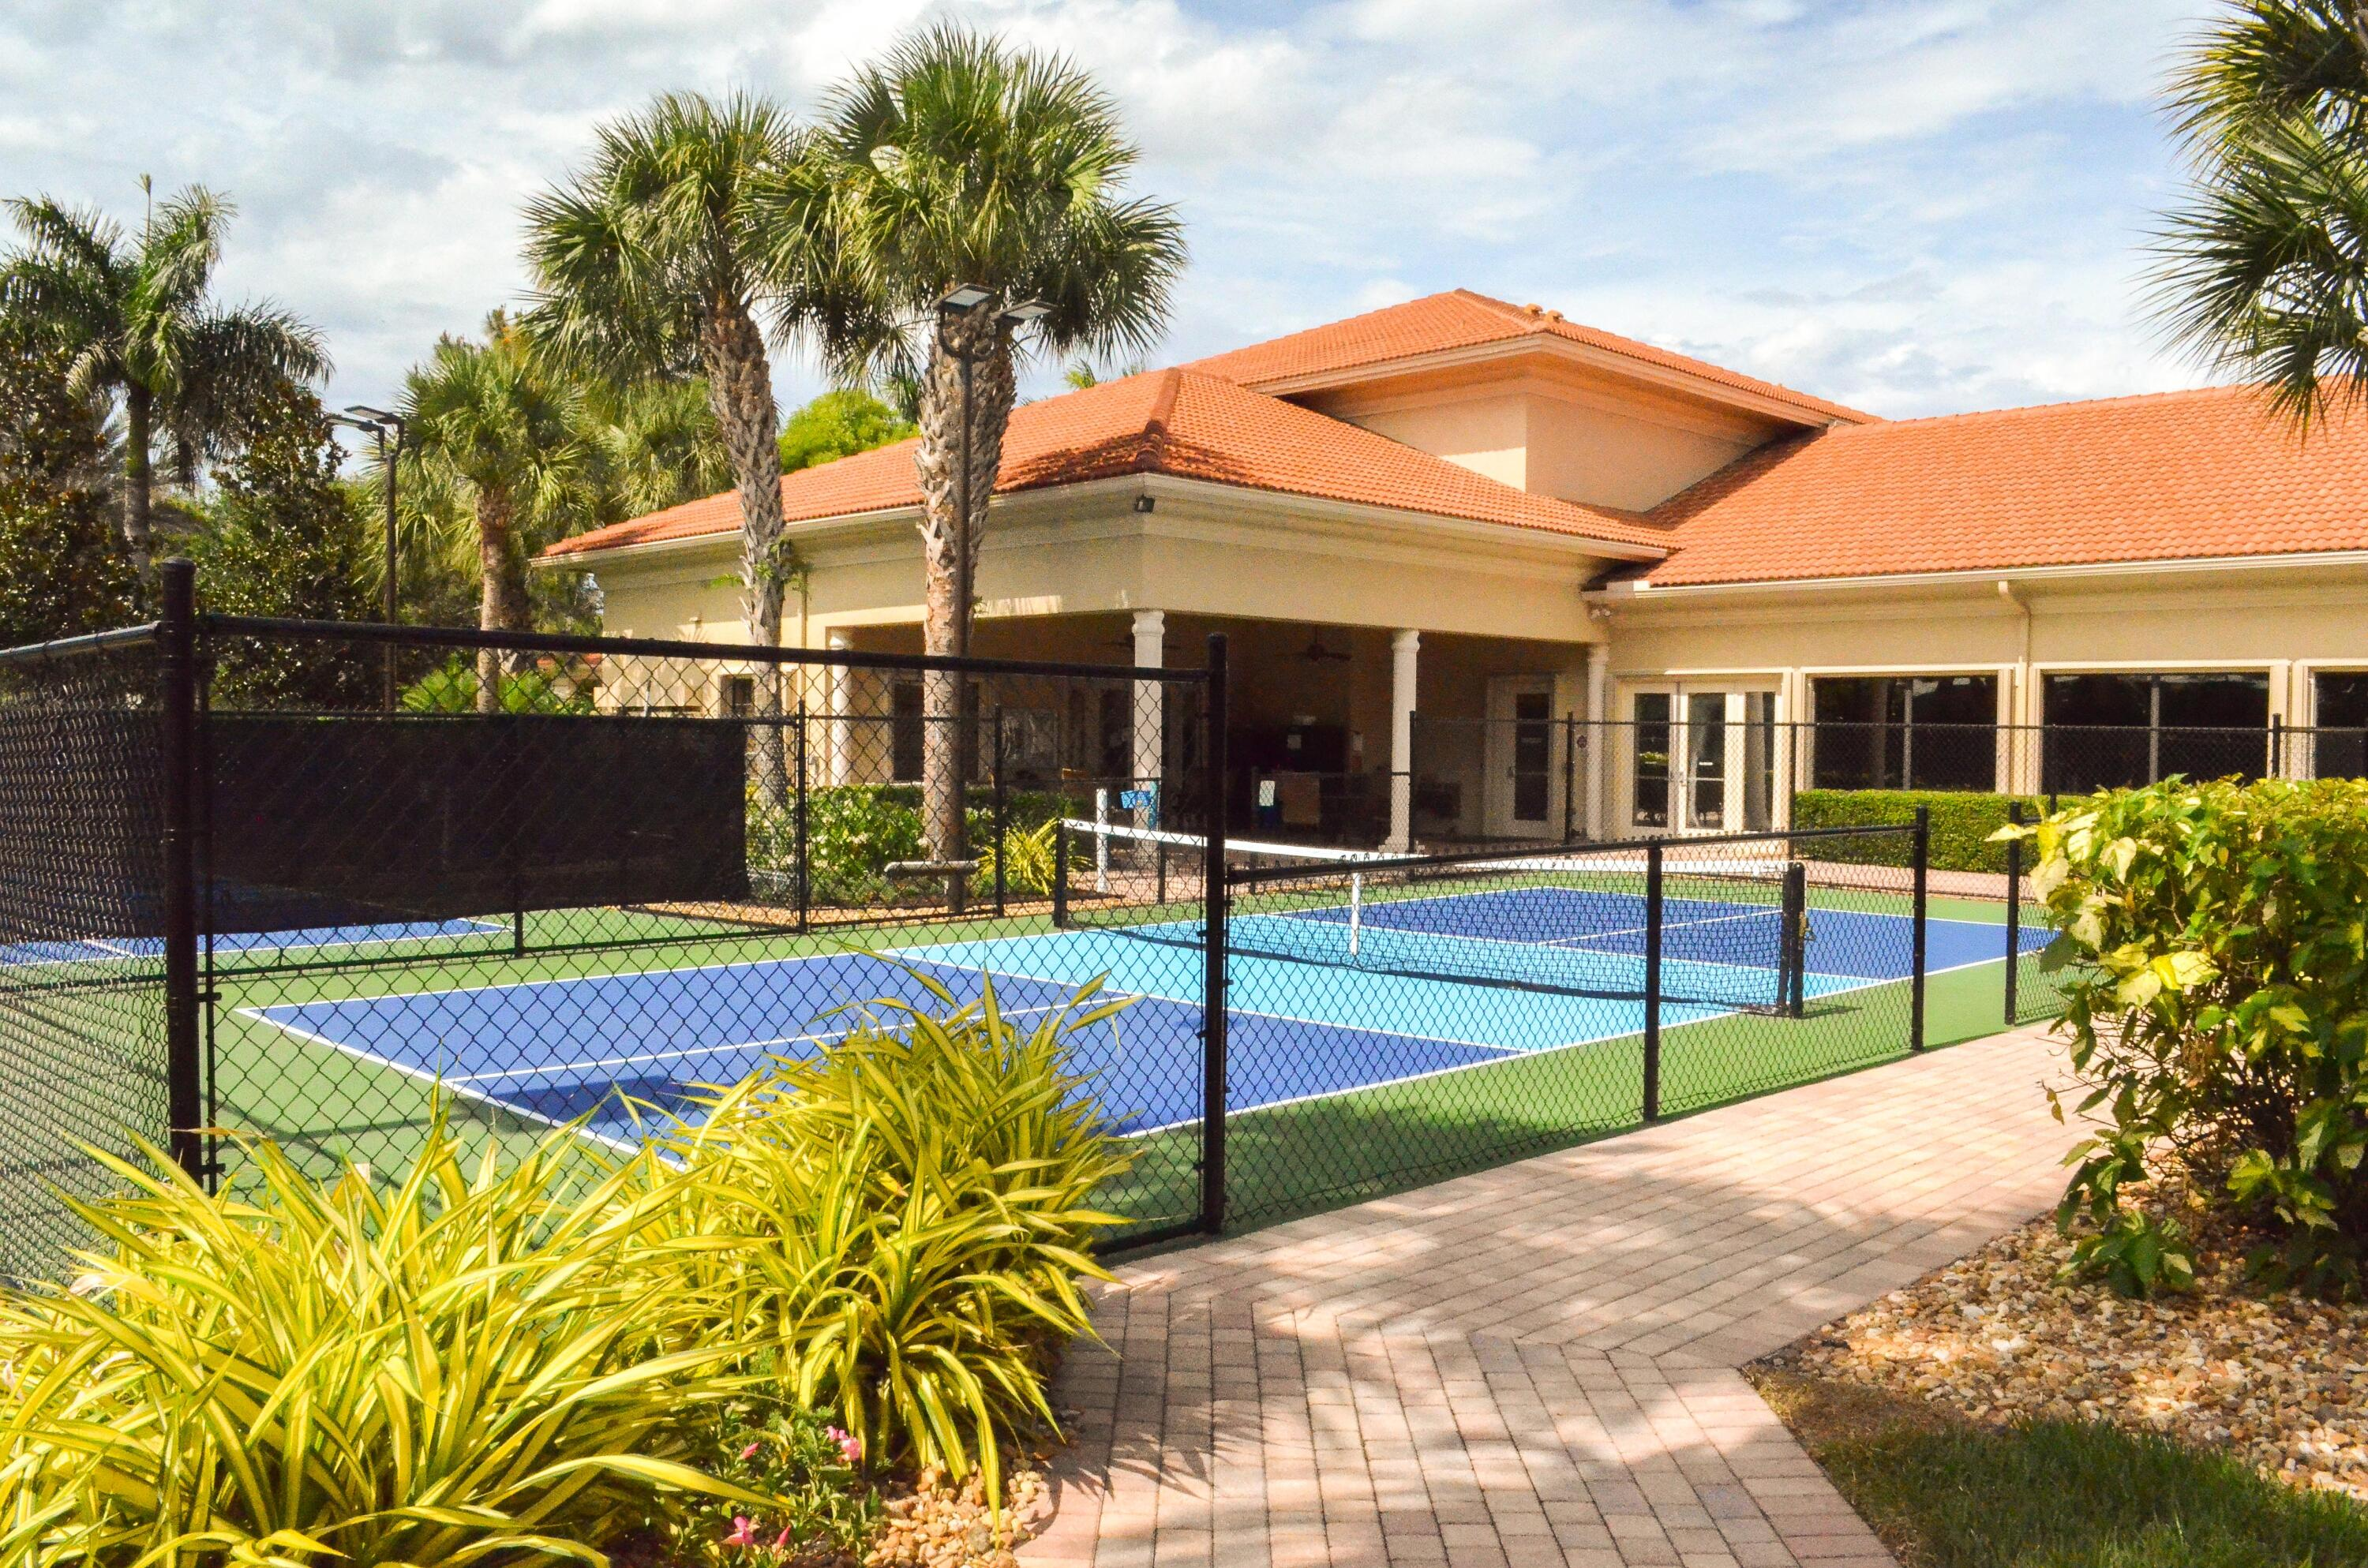 Two Pickleball Courts